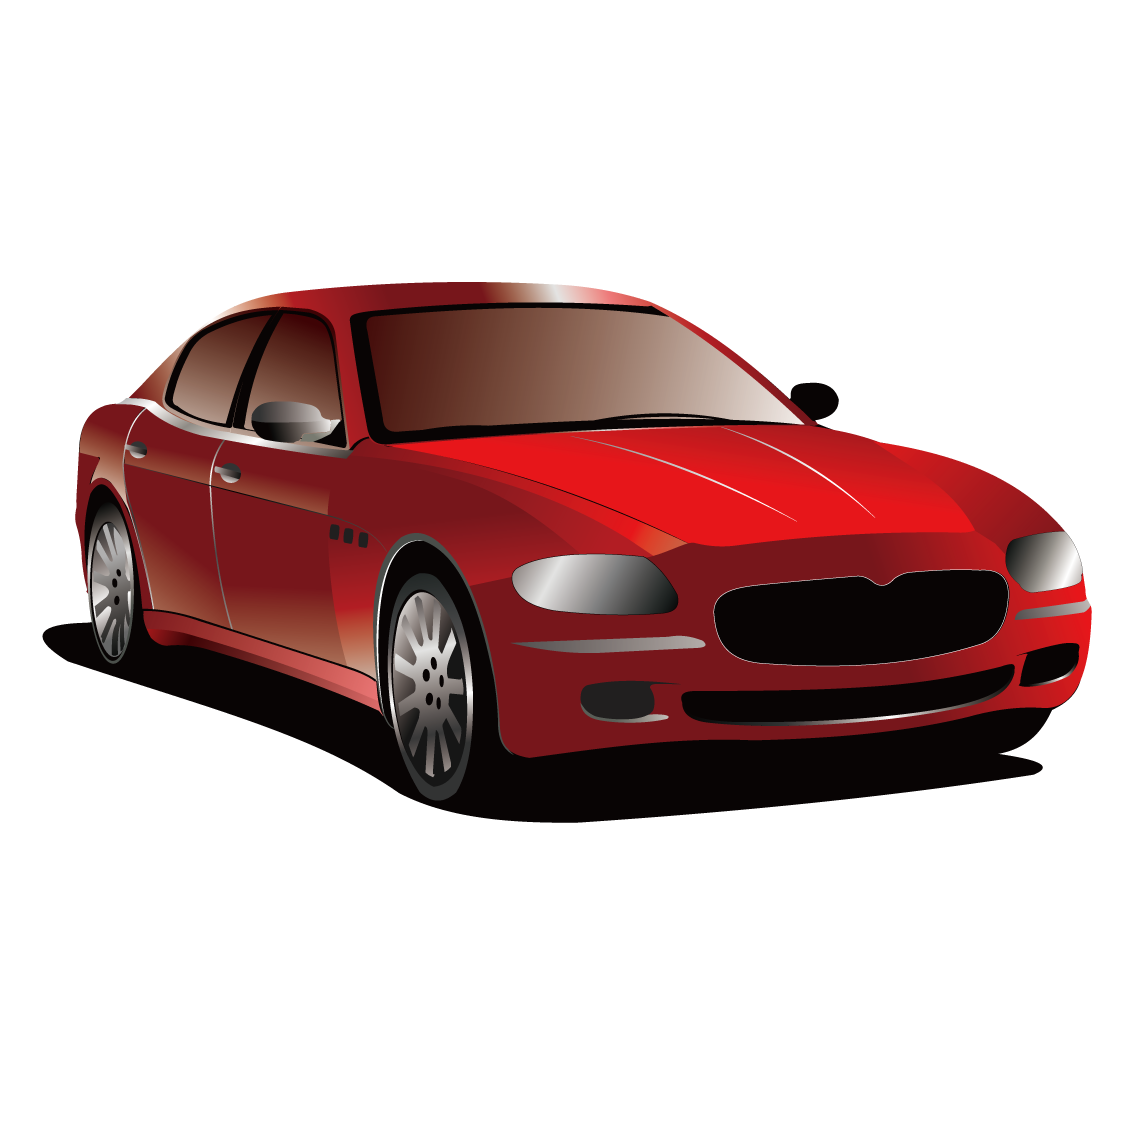 Luxury Car Vector At Getdrawings Com Free For Personal Use Luxury